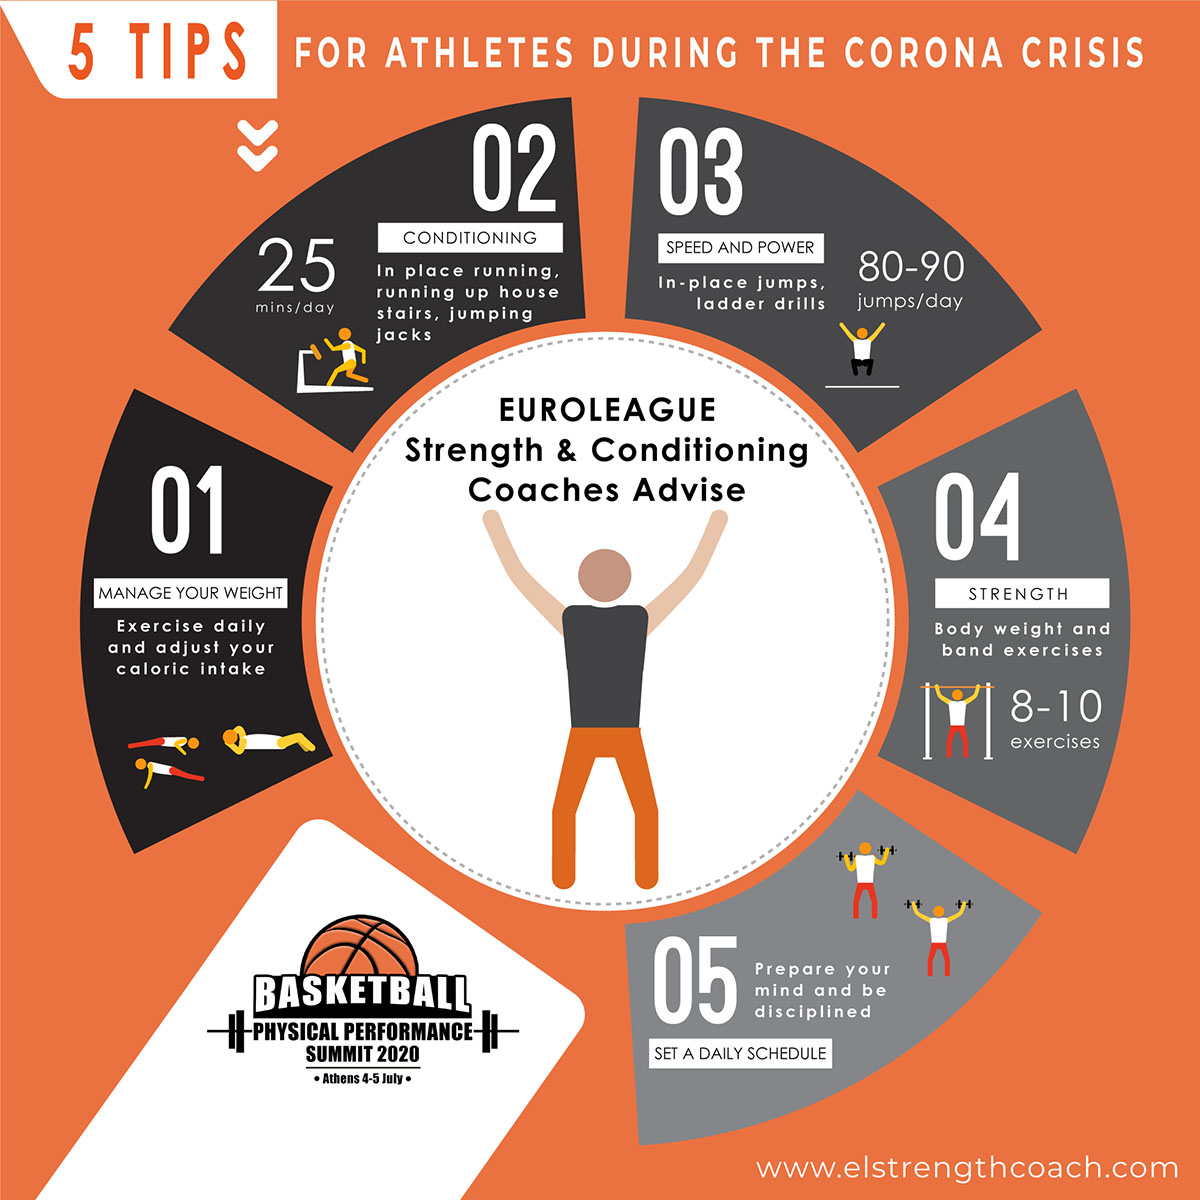 Basketball Physical Performance Summit - Tips Athletes - Corona virus